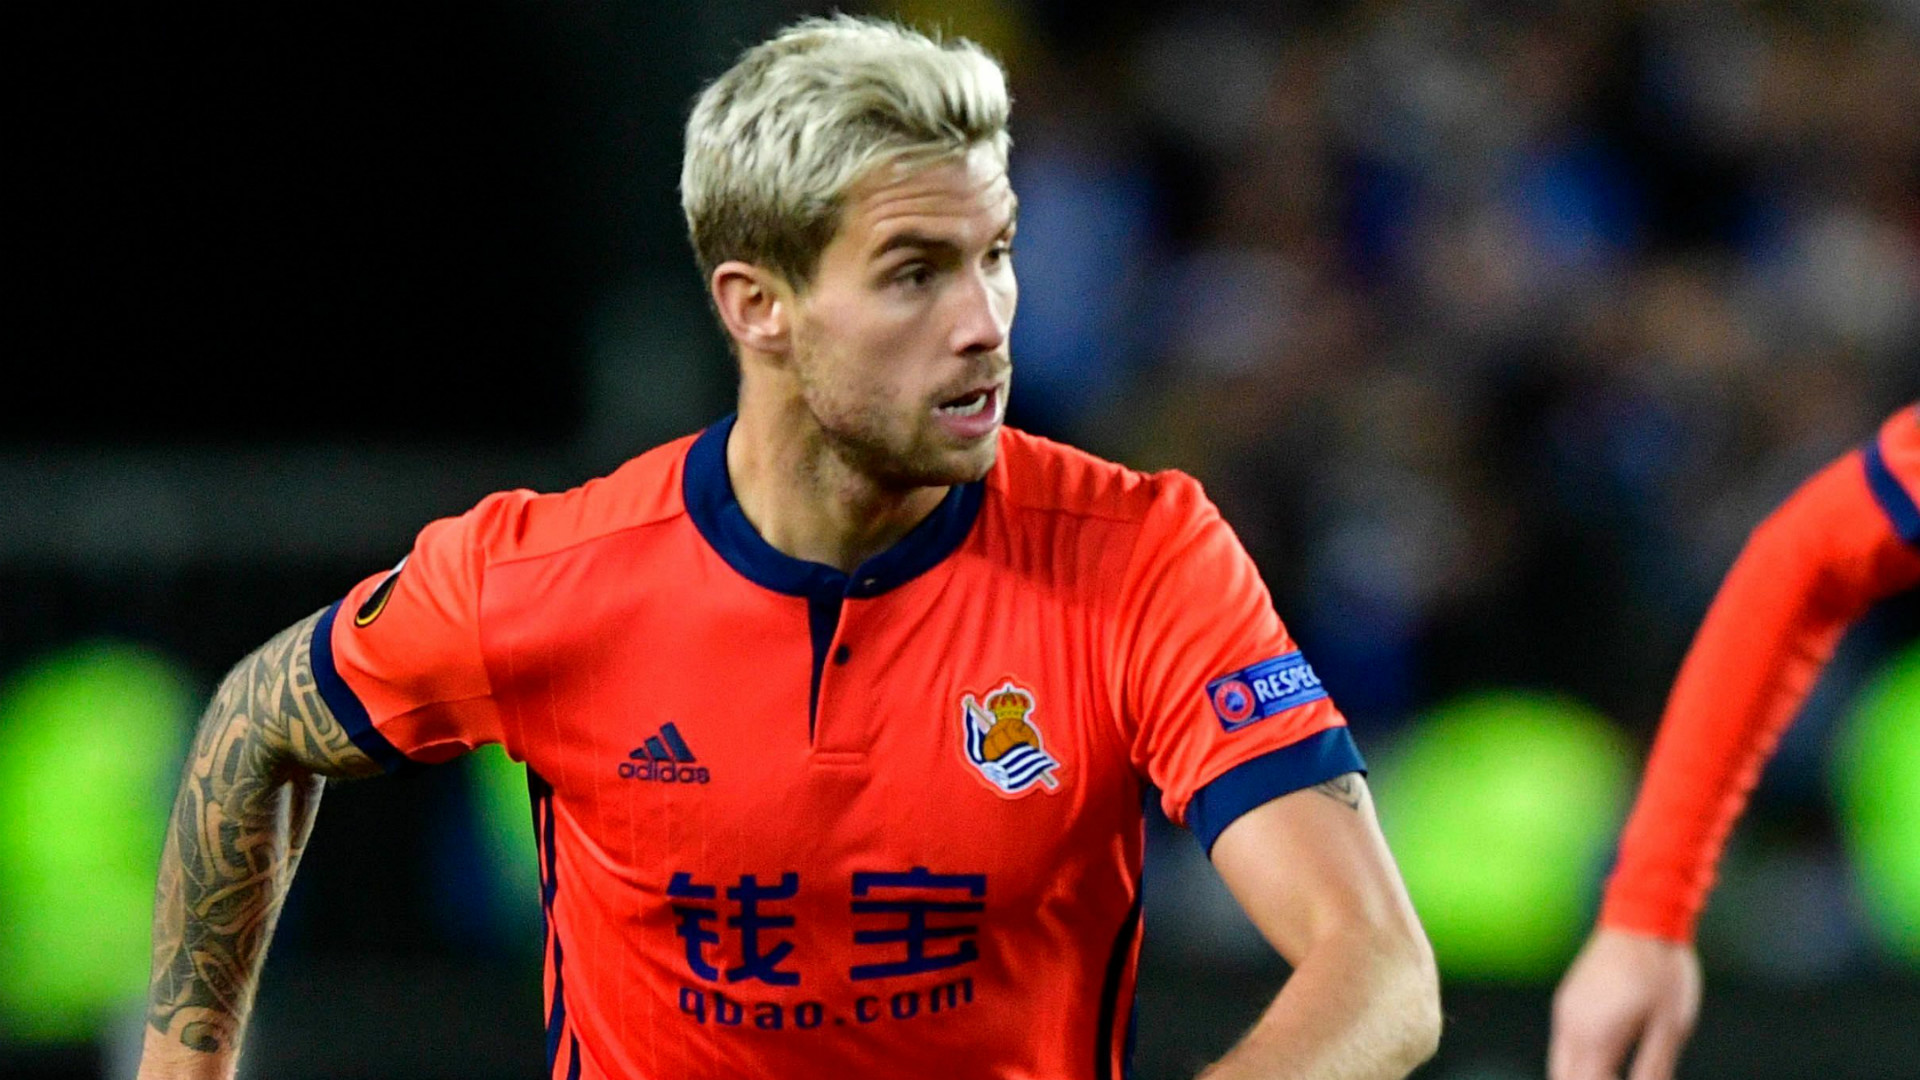 inigo martinez real sociedad 11xne94q0z9kt1kyohcp4xrutq - ROUND-UP of 30/1/2018 TRANSFER NEWS, DONE DEALS AND RUMOURS